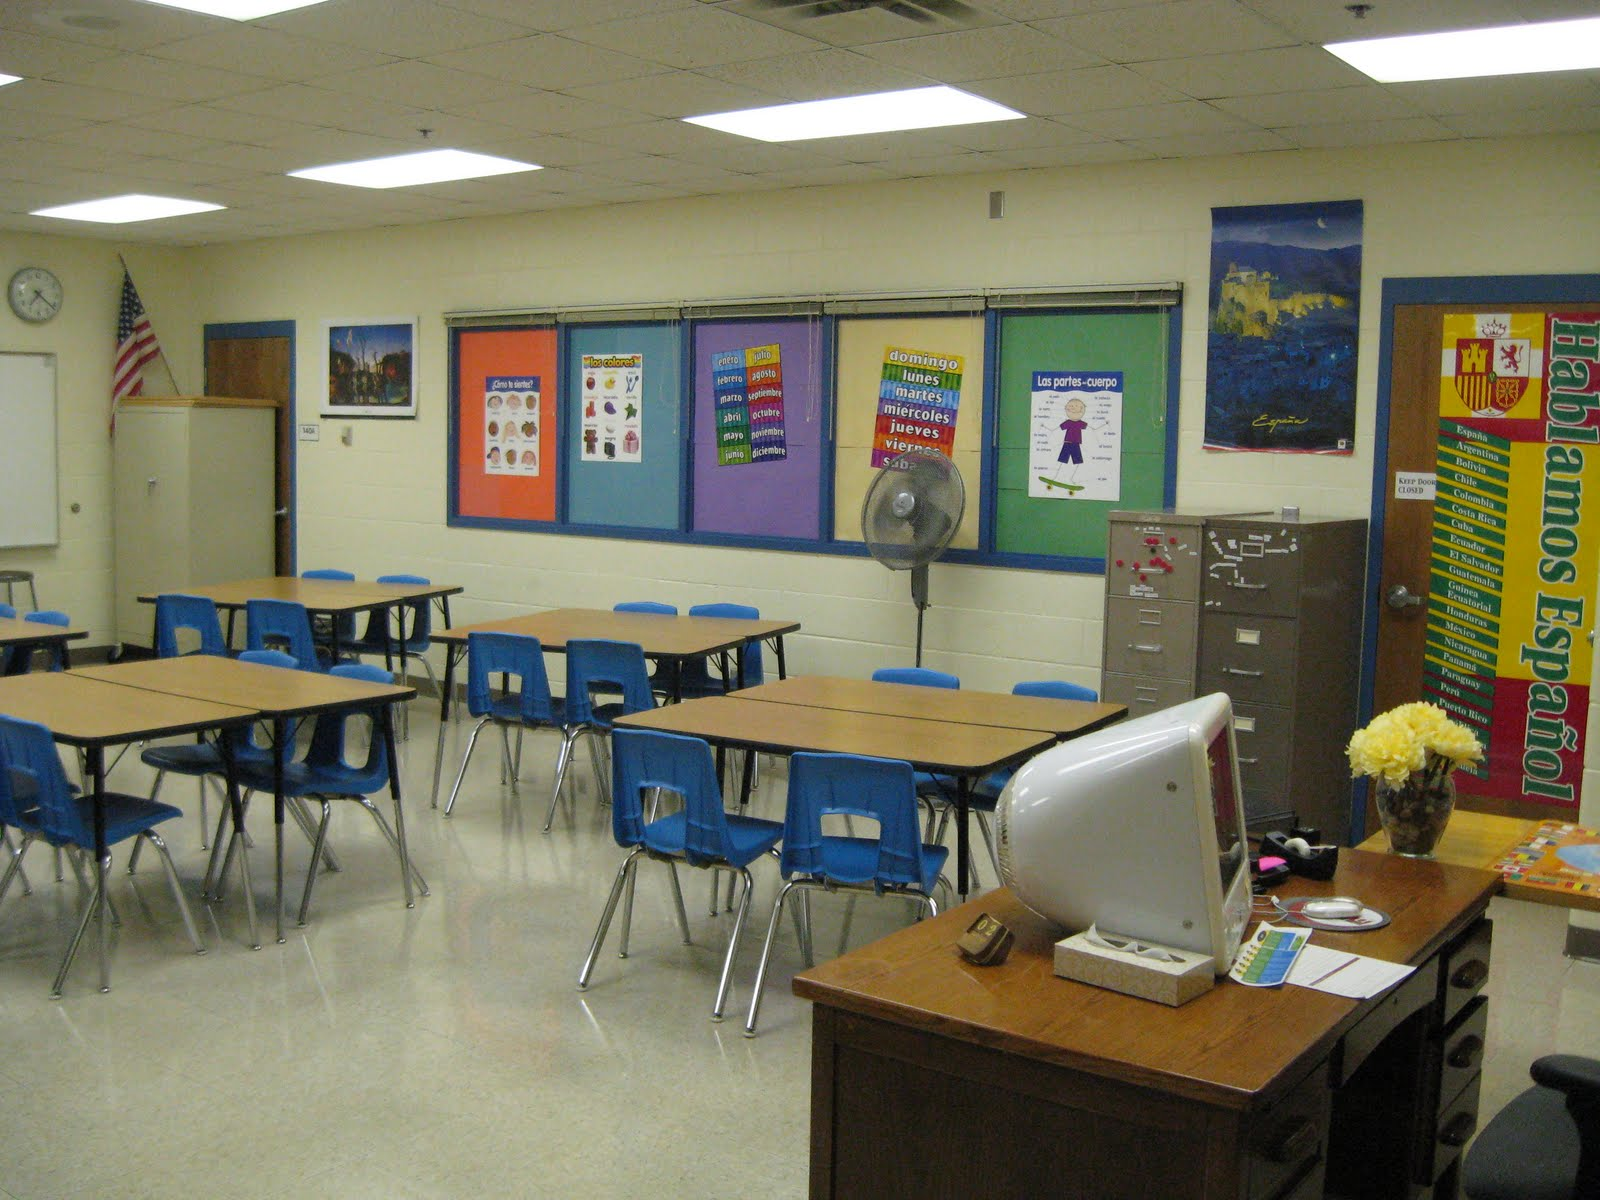 Design Ideas For Classroom : Project decoration classroom decorations